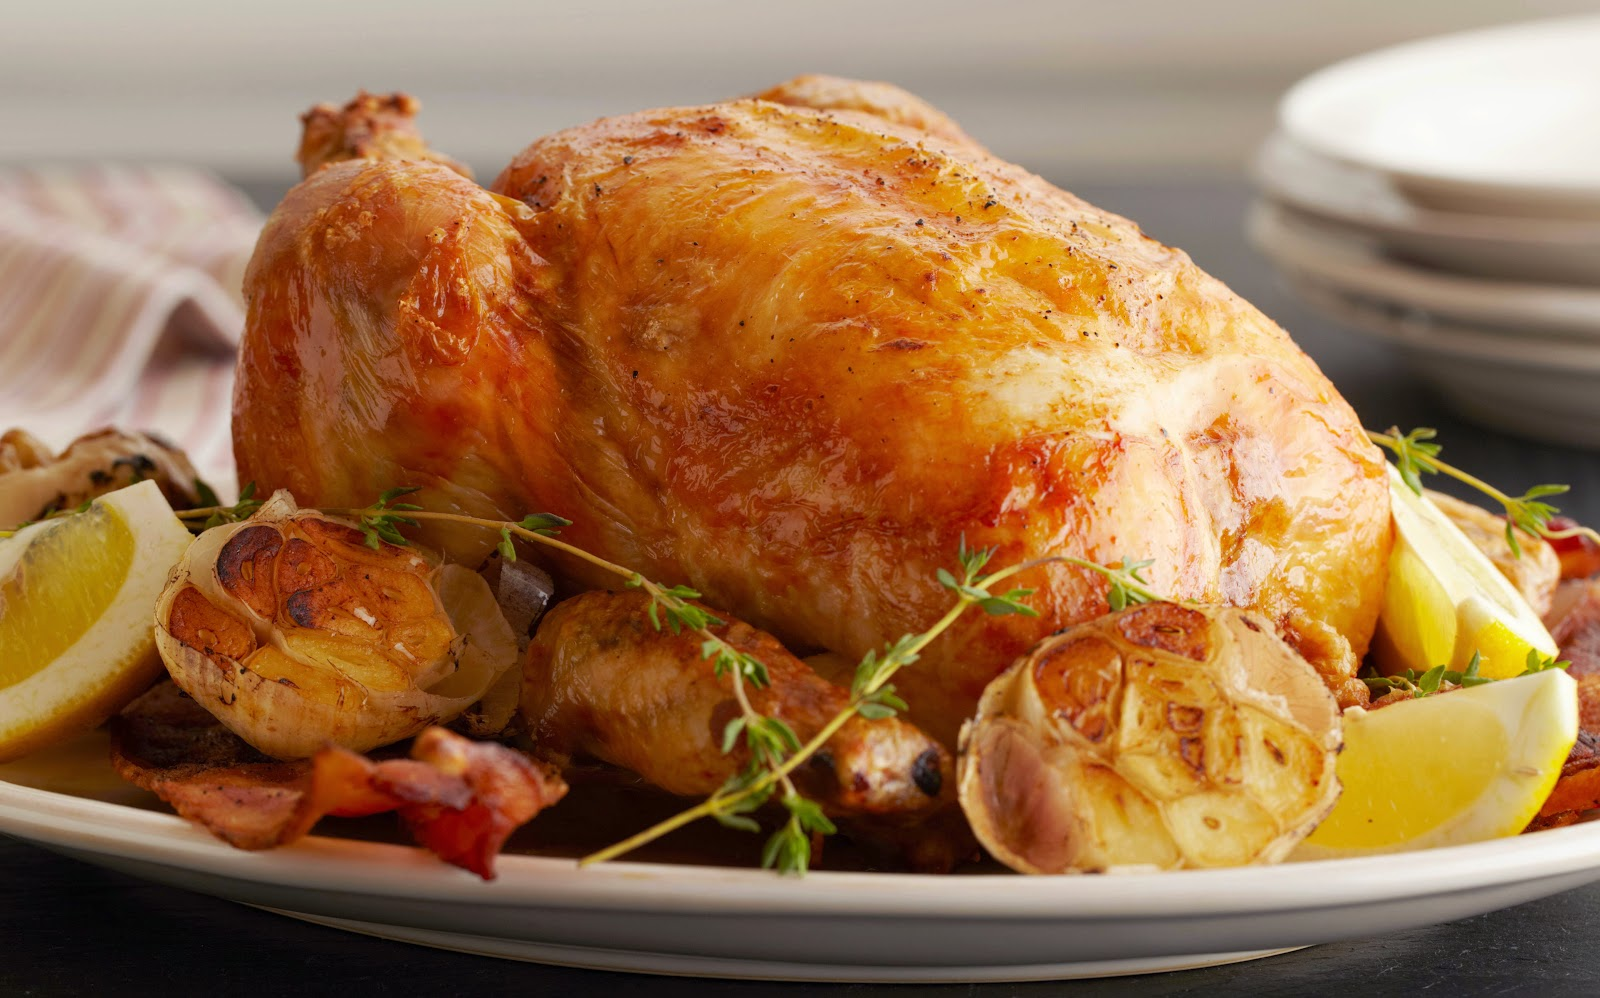 Welcome Home Blog: My Mom's Moist and Juicy Roast Turkey